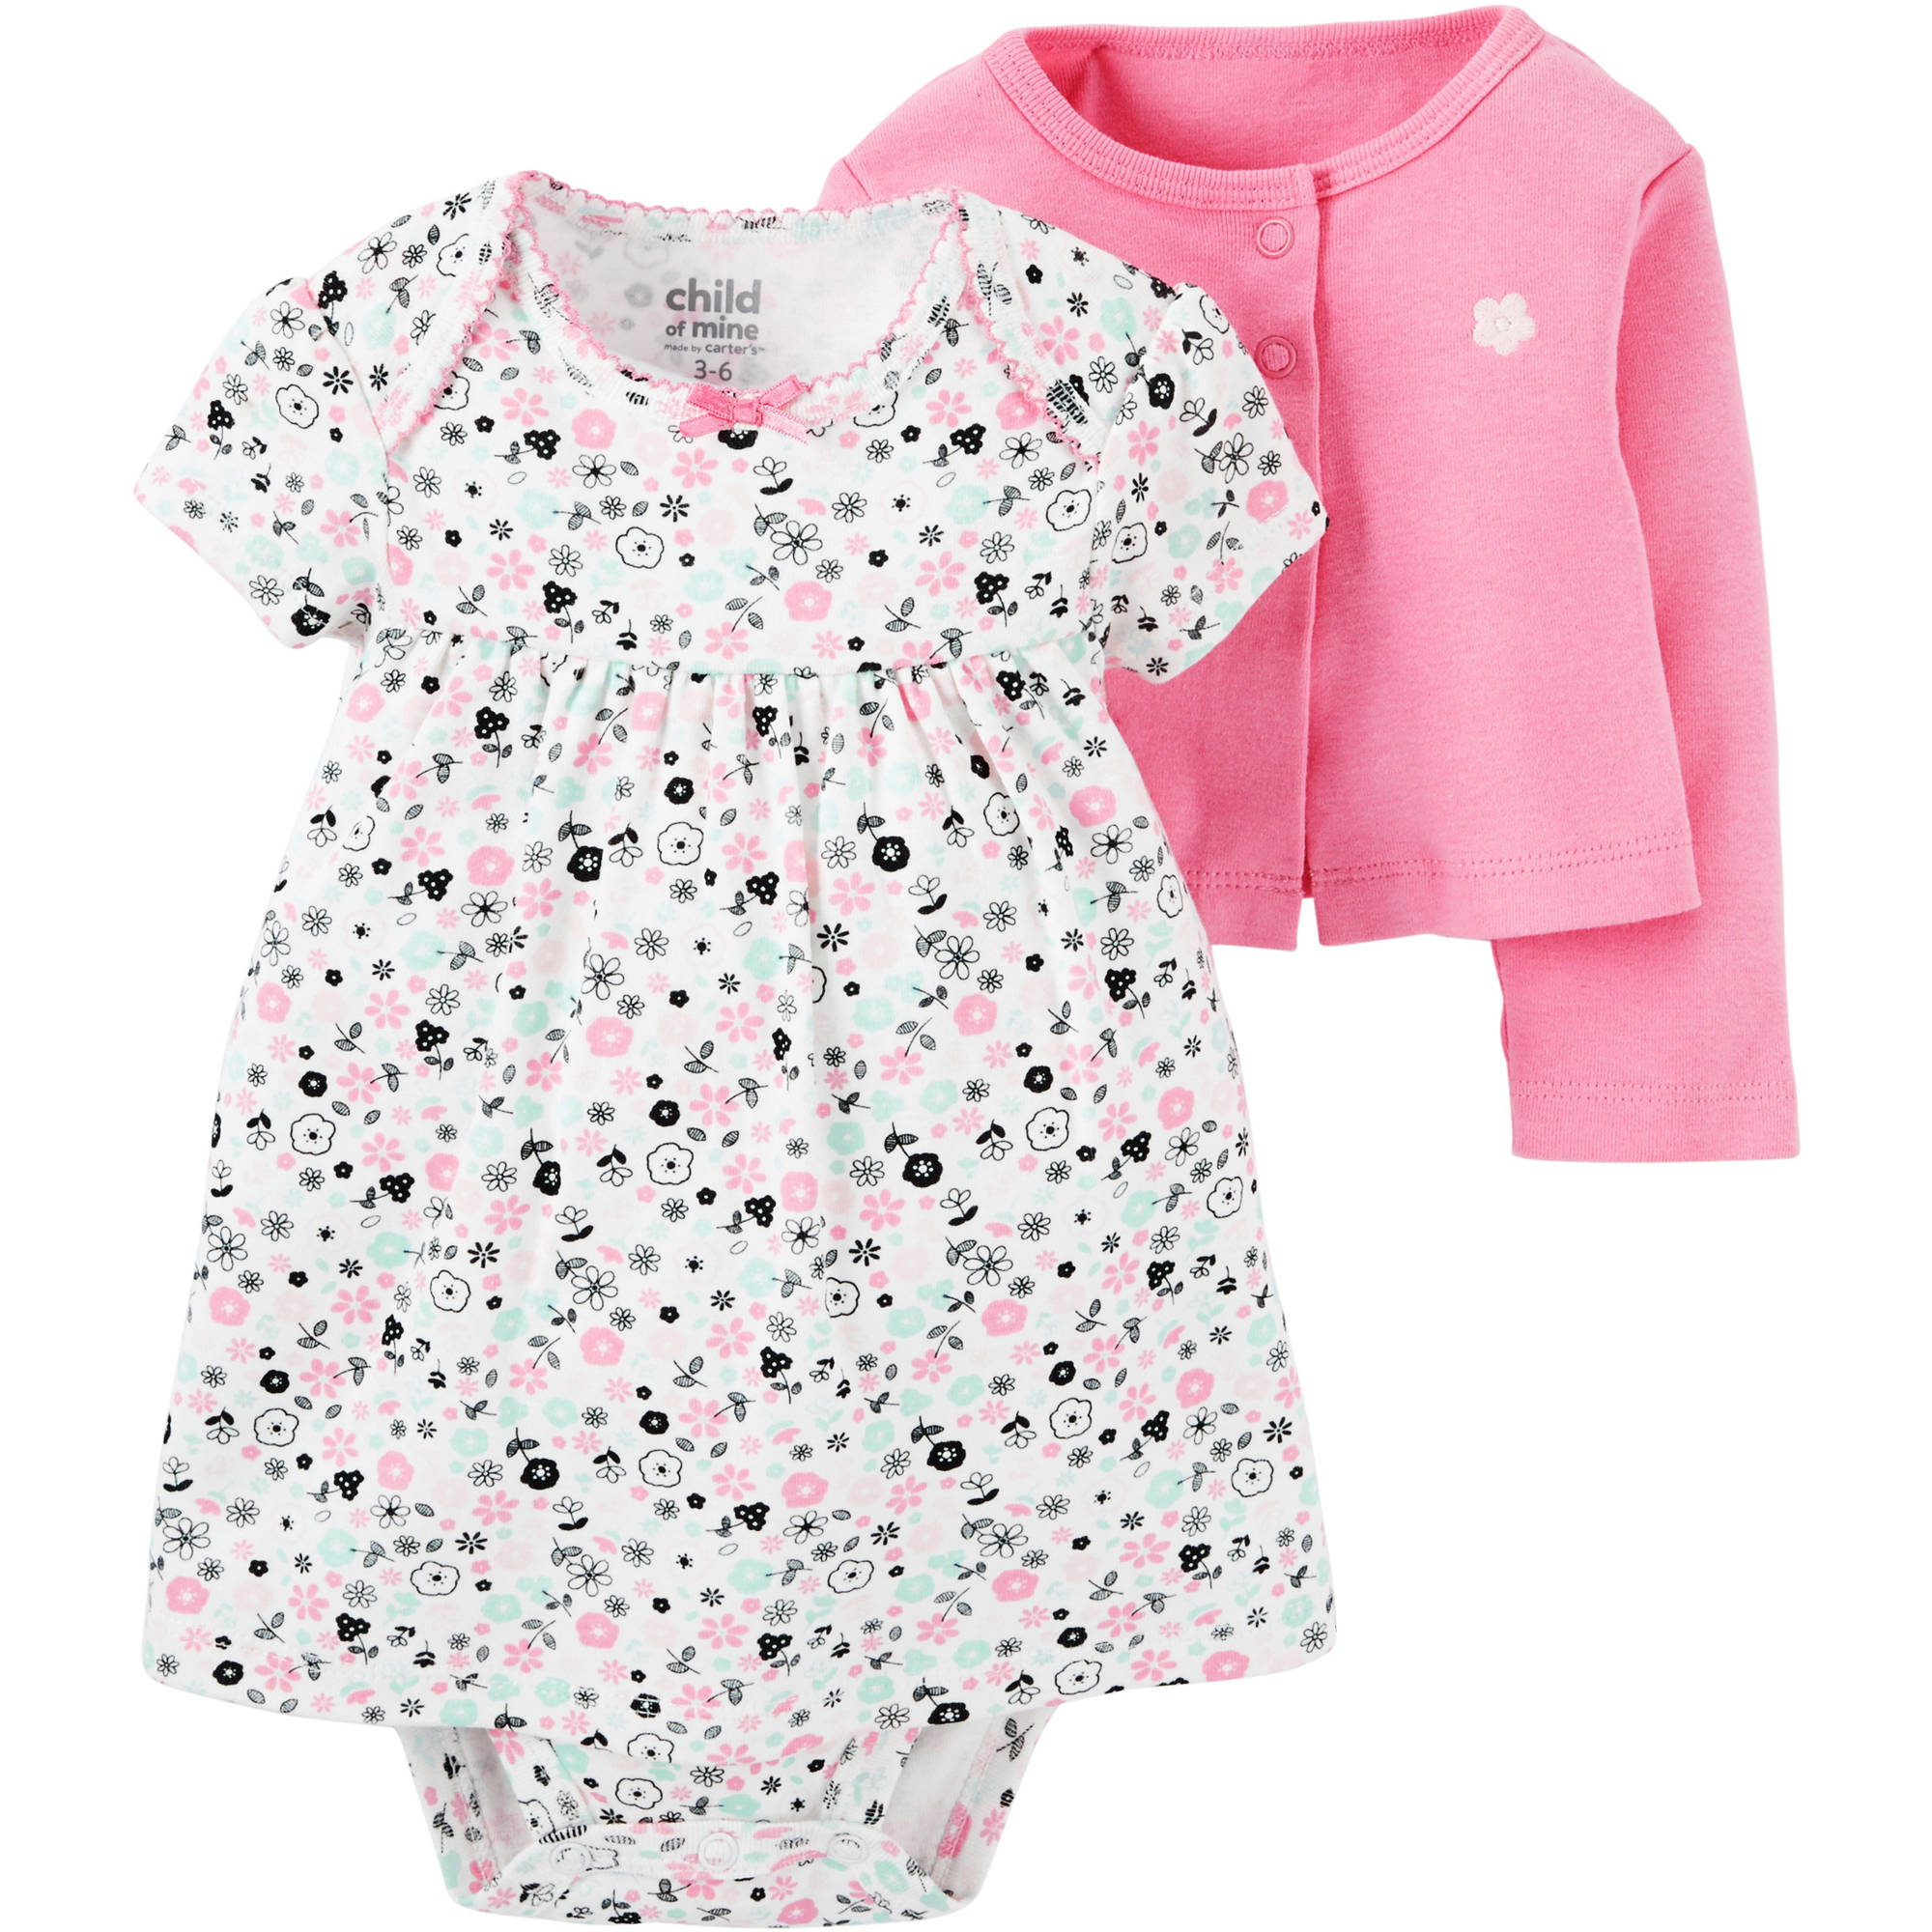 Child Of Mine by Carter's Newborn Baby Girl Dress And Cardigan Outfit 2-Piece Set